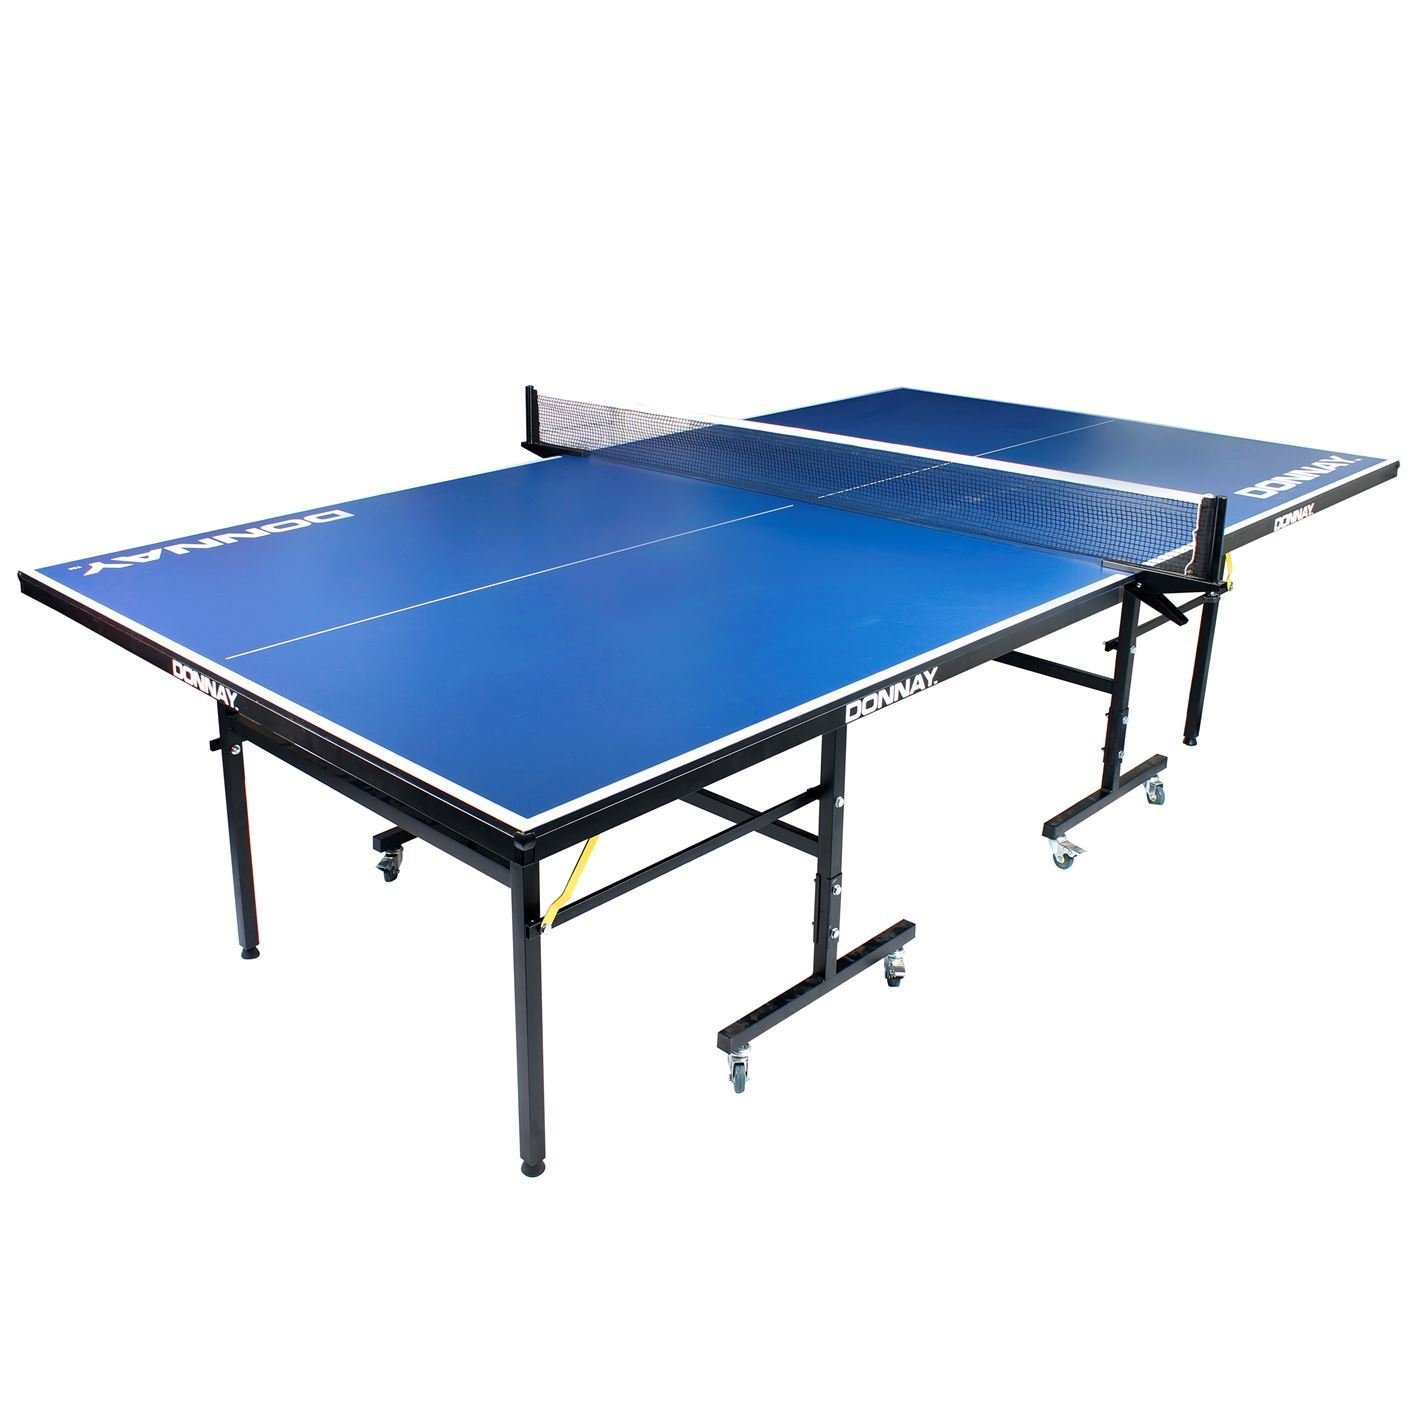 Superbe Donnay Indoor Outdoor Table Tennis Table Blue Full Size Folding Ping Pong:  Amazon.co.uk: Sports U0026 Outdoors